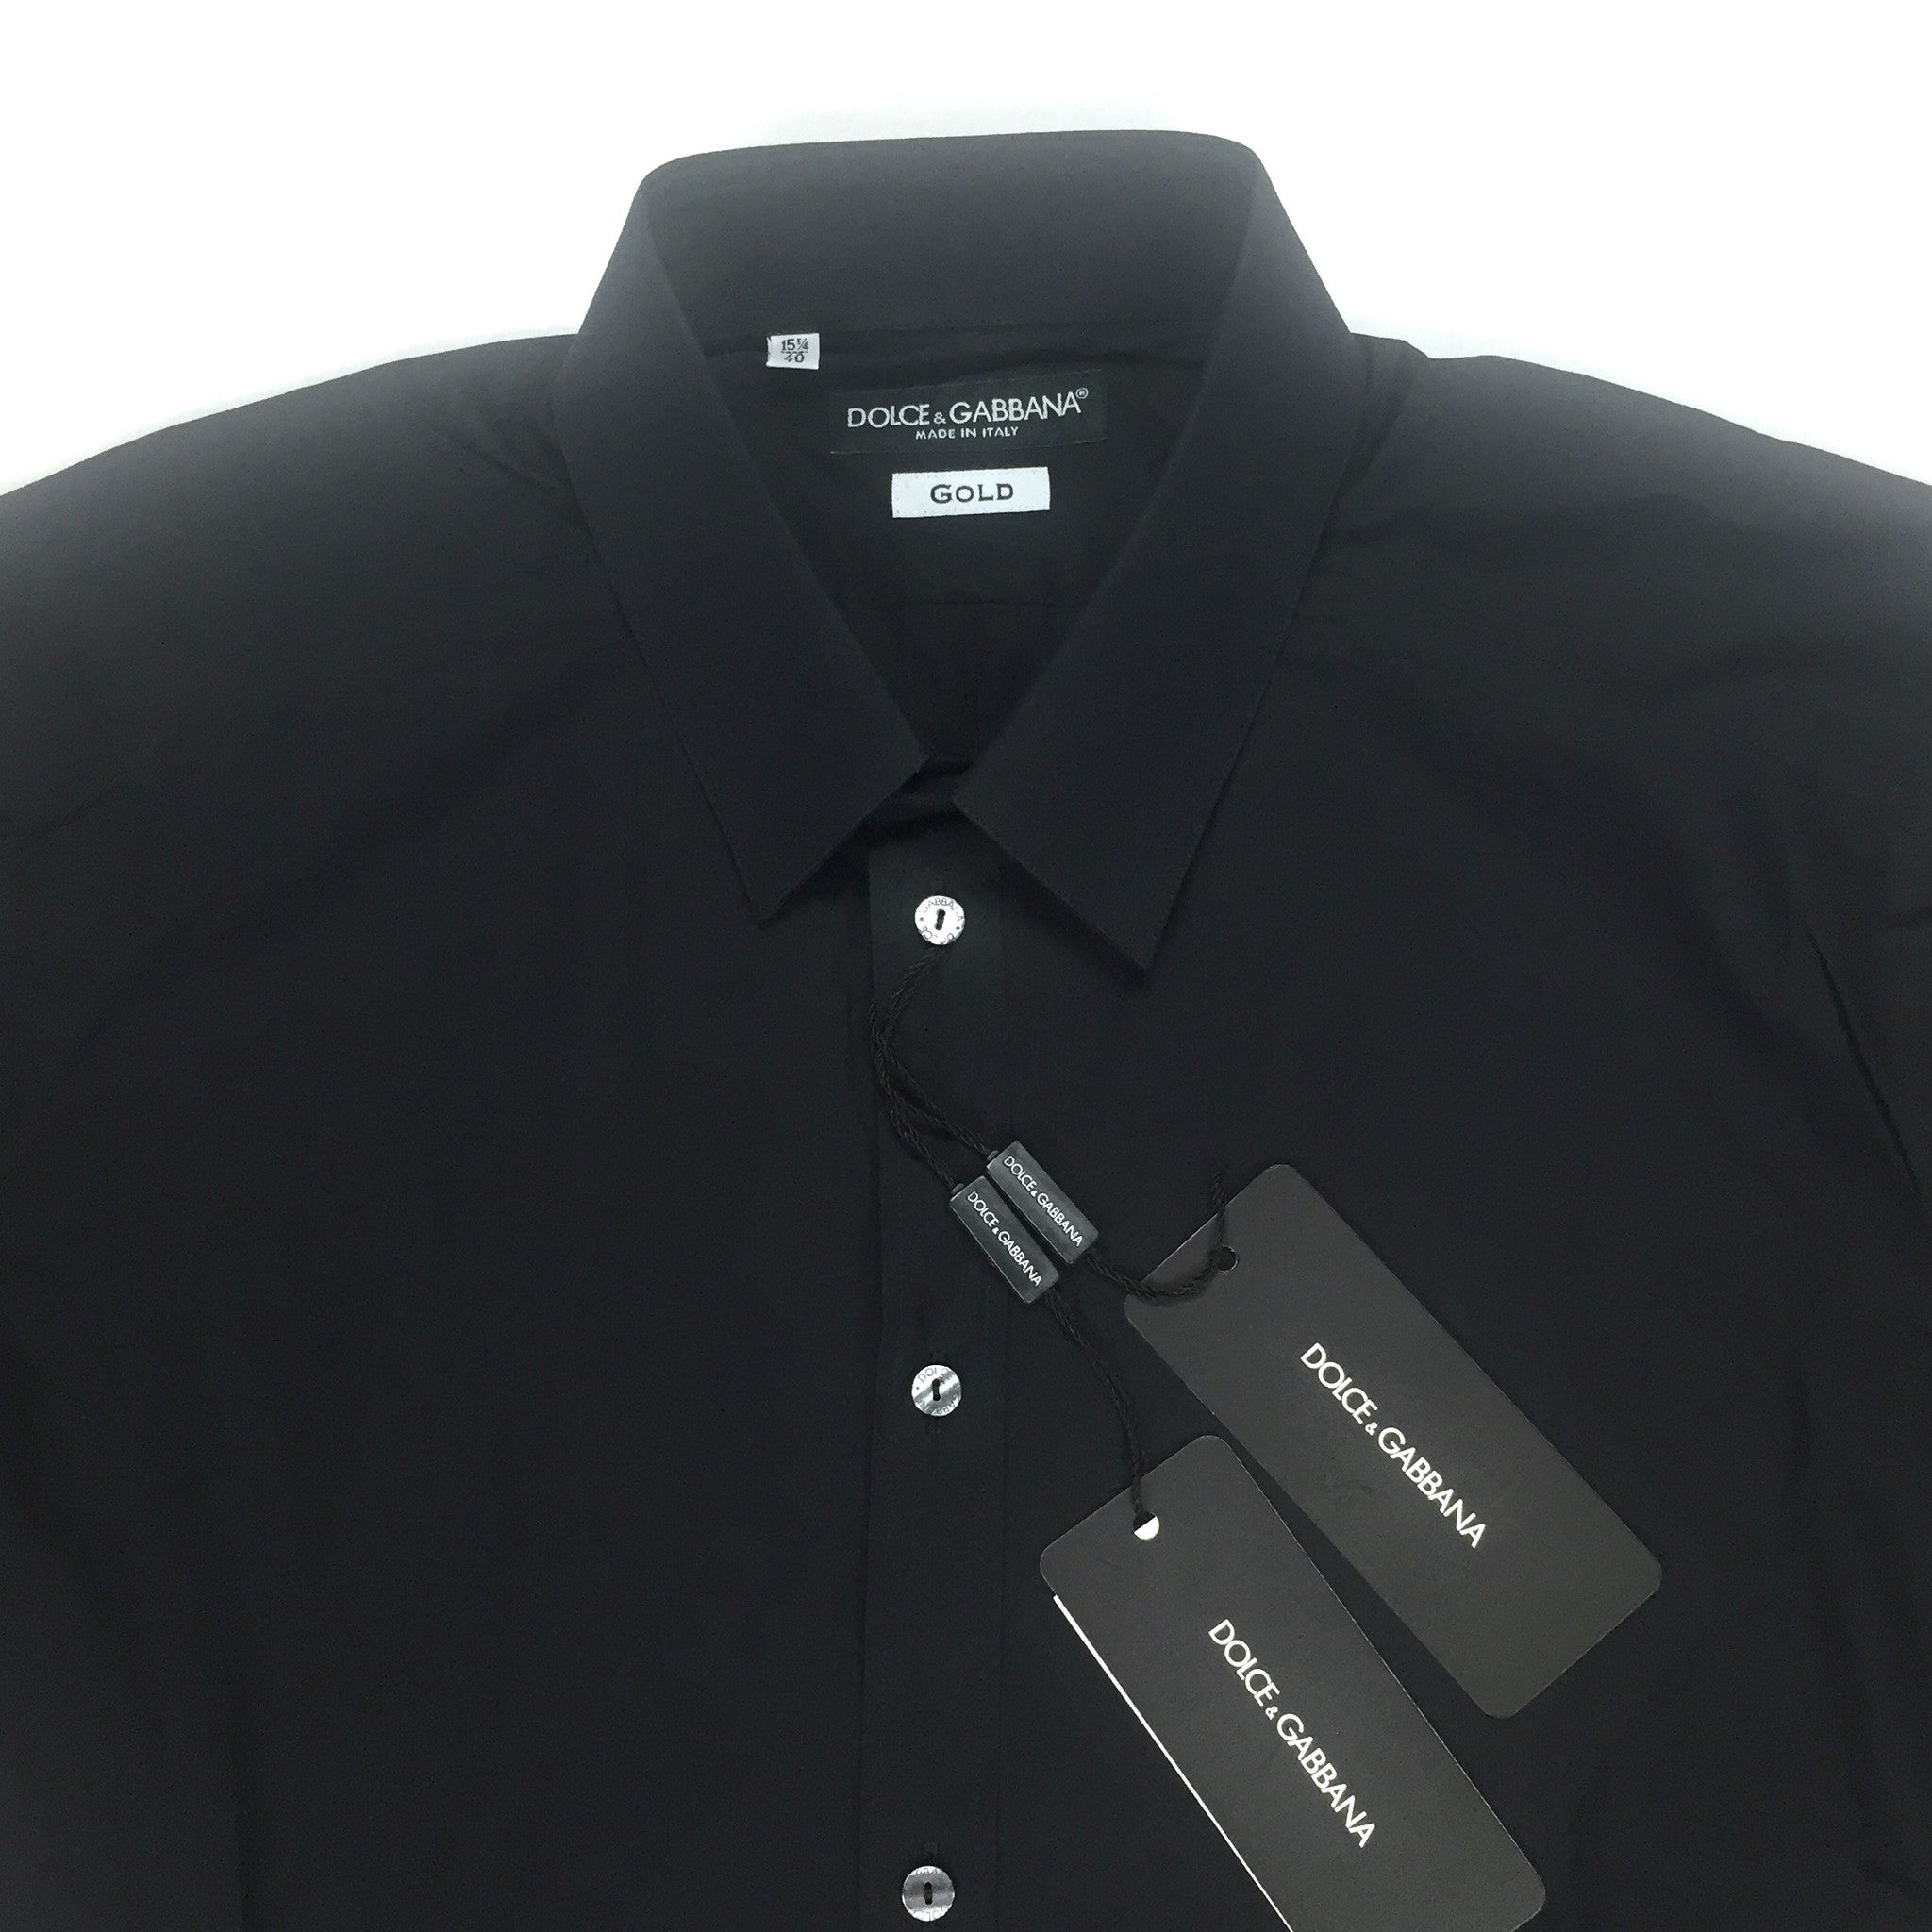 Dolce & Gabbana - Black Button Down Dress Shirt